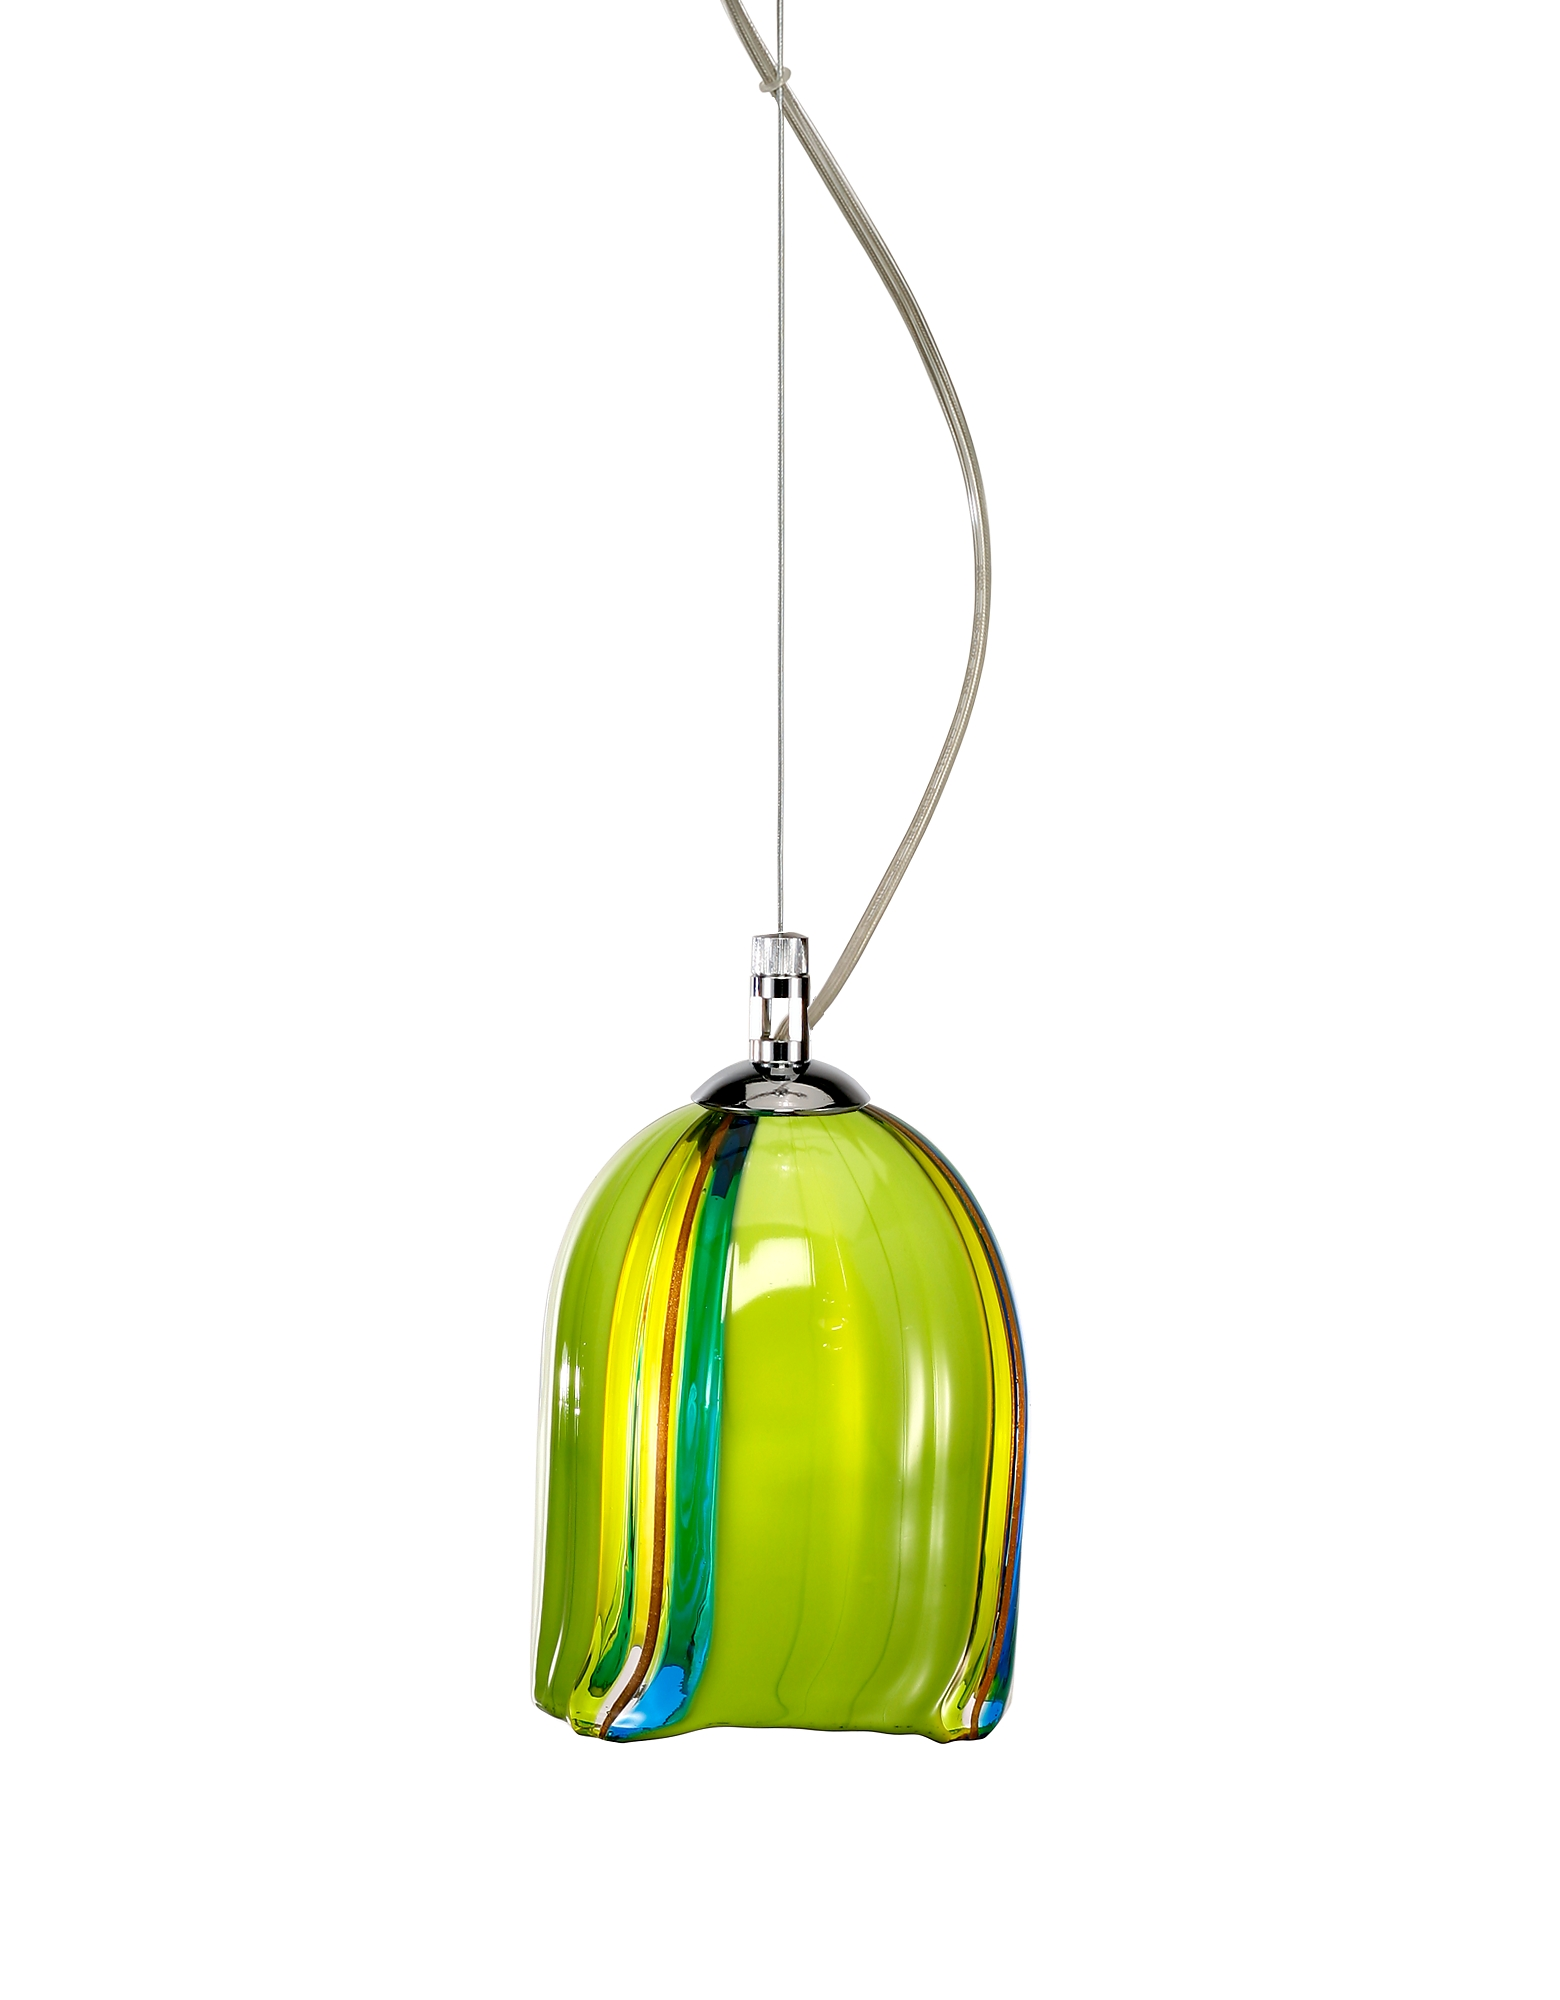 Voltolina Designer Decor & Lighting, Pistacchio - Murano Handmade Glass Pendant Lamp